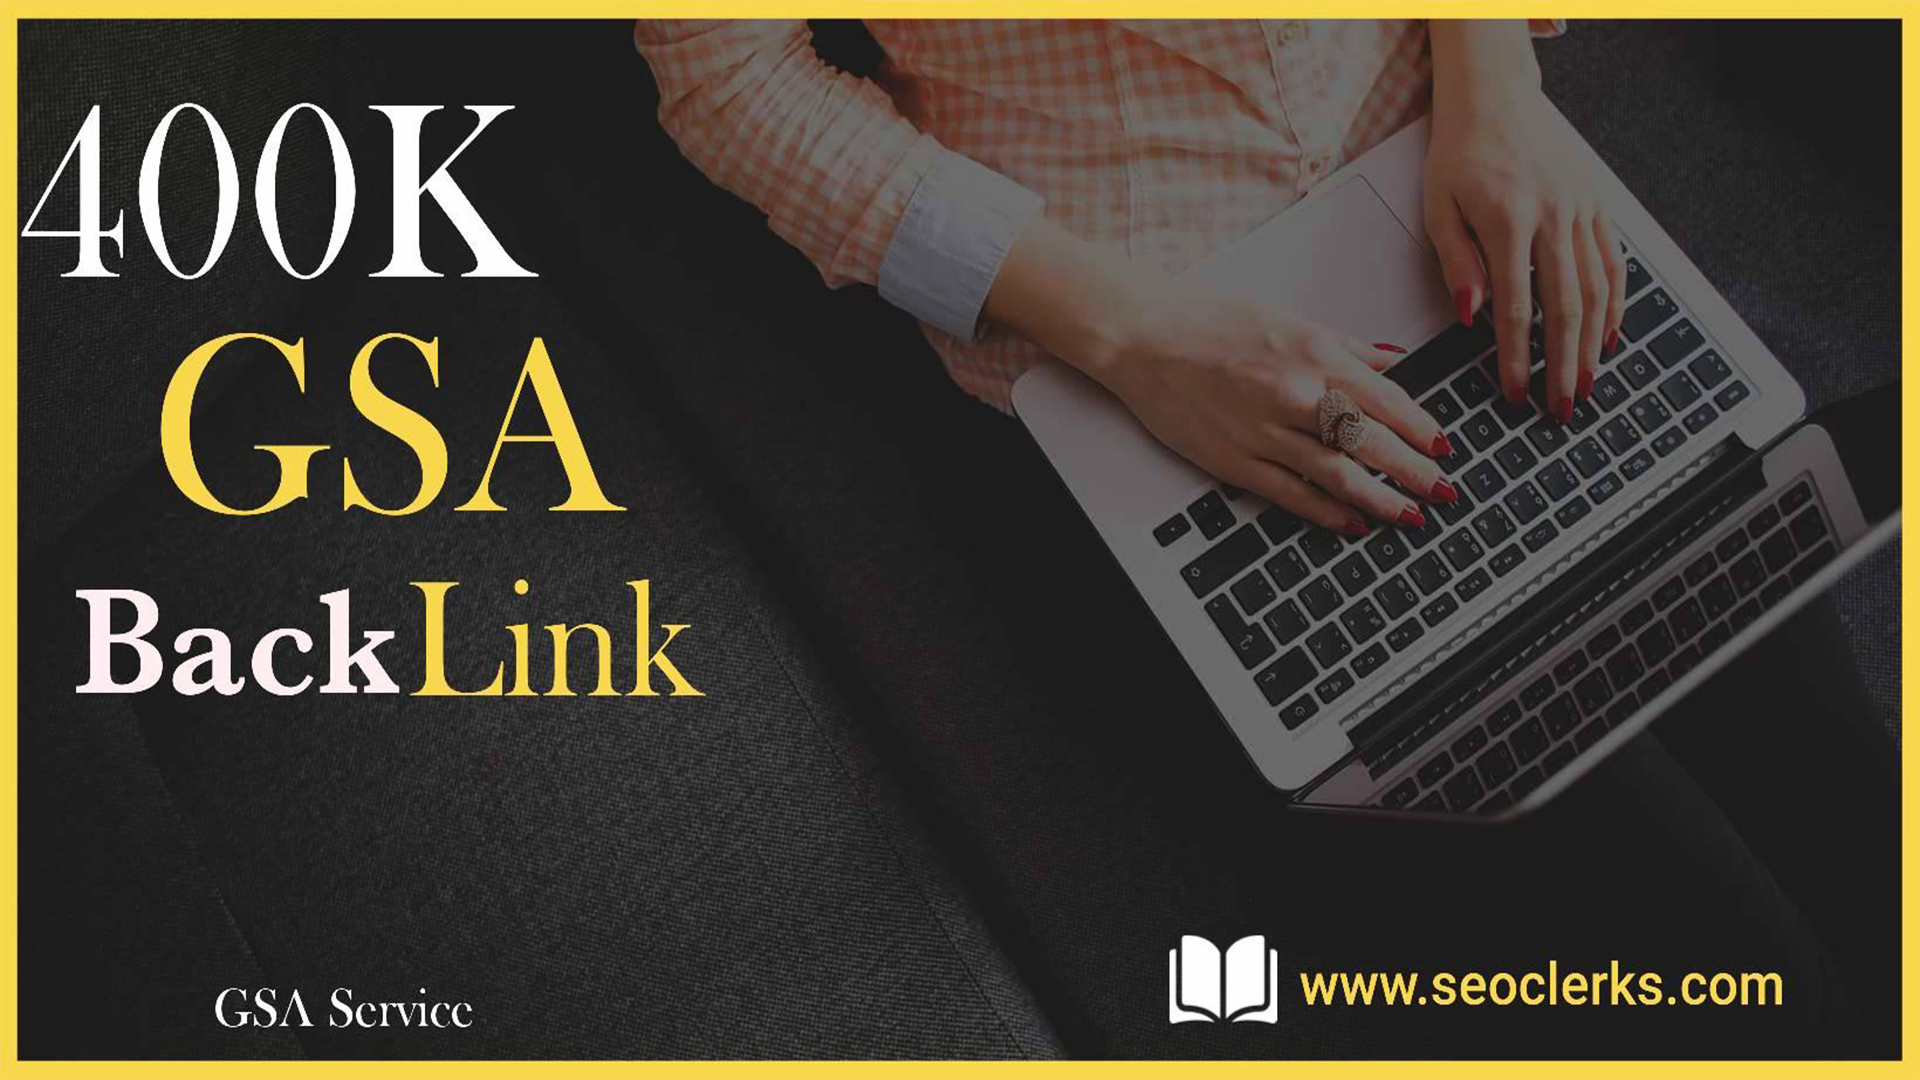 400K SEO GSA SER High Quality Backlinks for Google Ranking